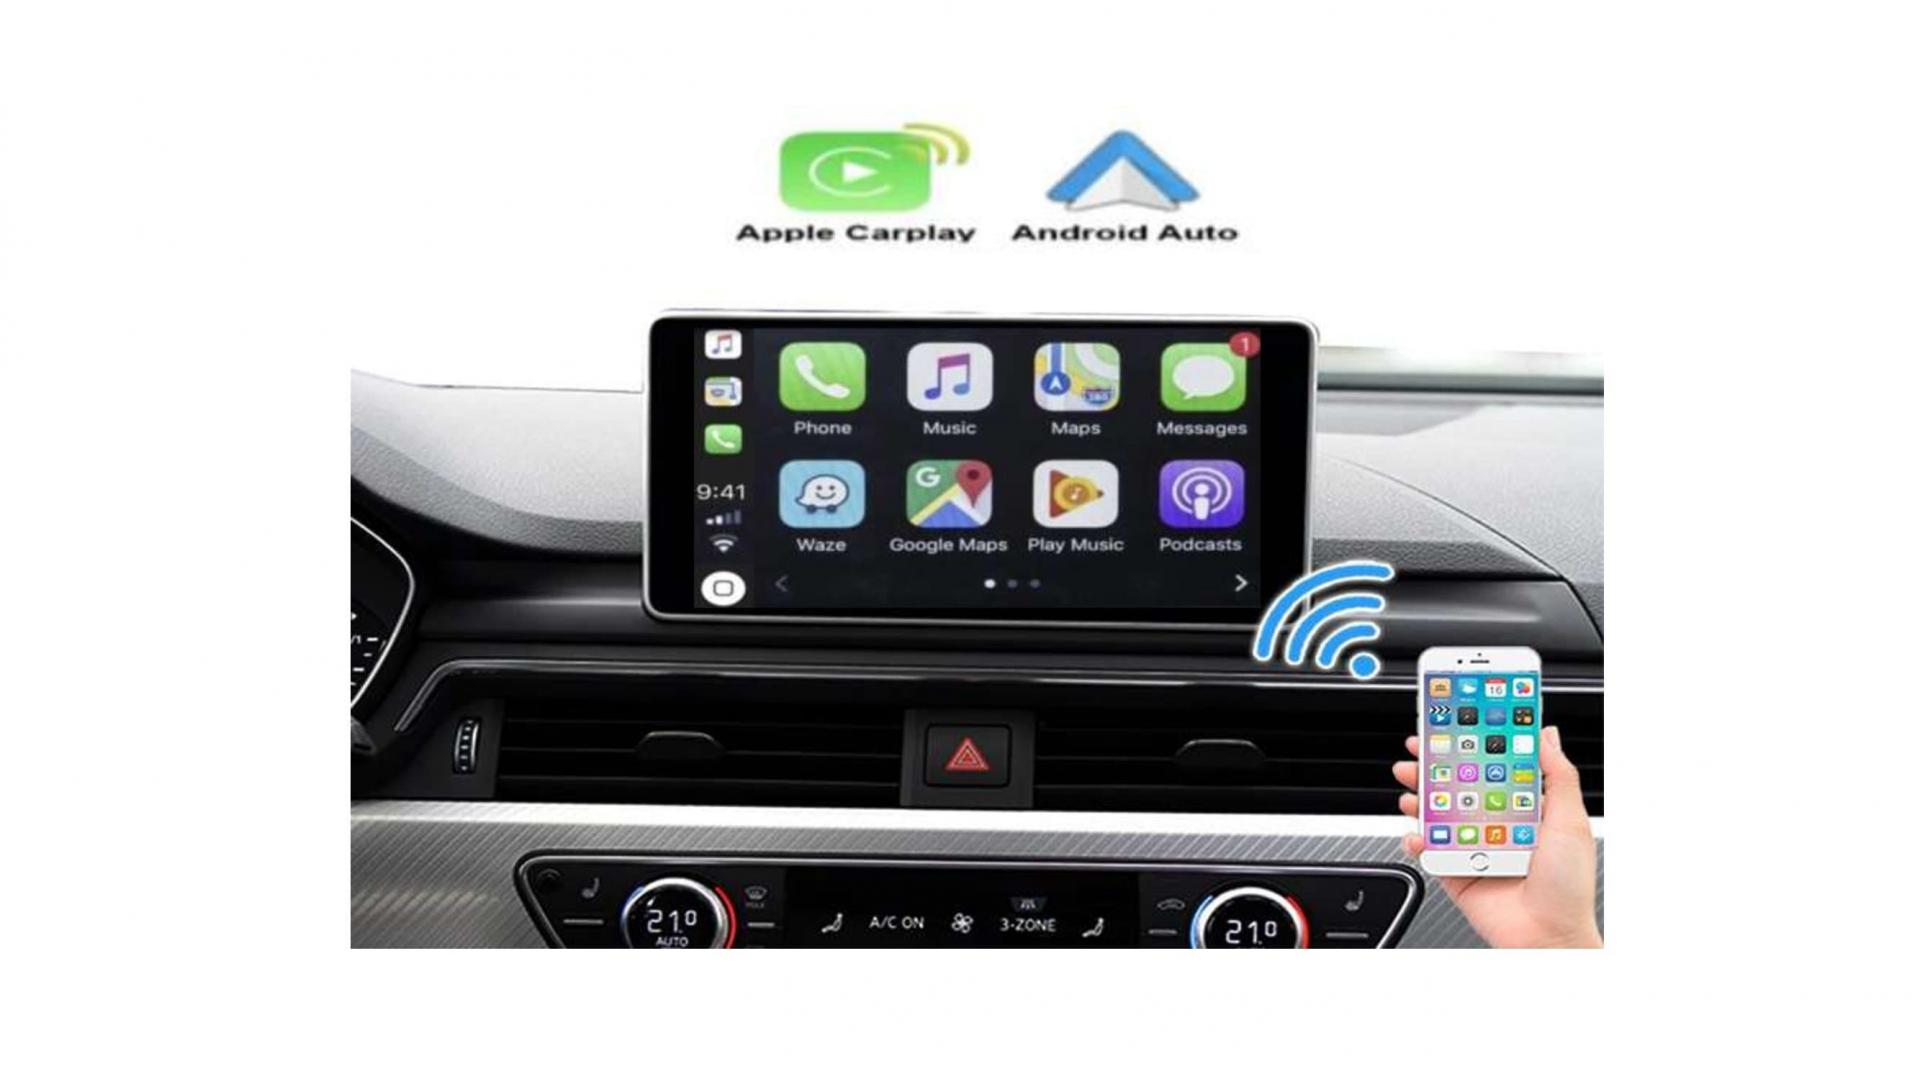 Ford explorer f150 transit connect tourneo carplay android auto gps autoradio i3 x3 m3 m5 x1 f48 x2 f39 2010 2011 2012 2013 2014 2015 2016 2017 2018 2019 e84 x5 x6 serie 1 serie 3